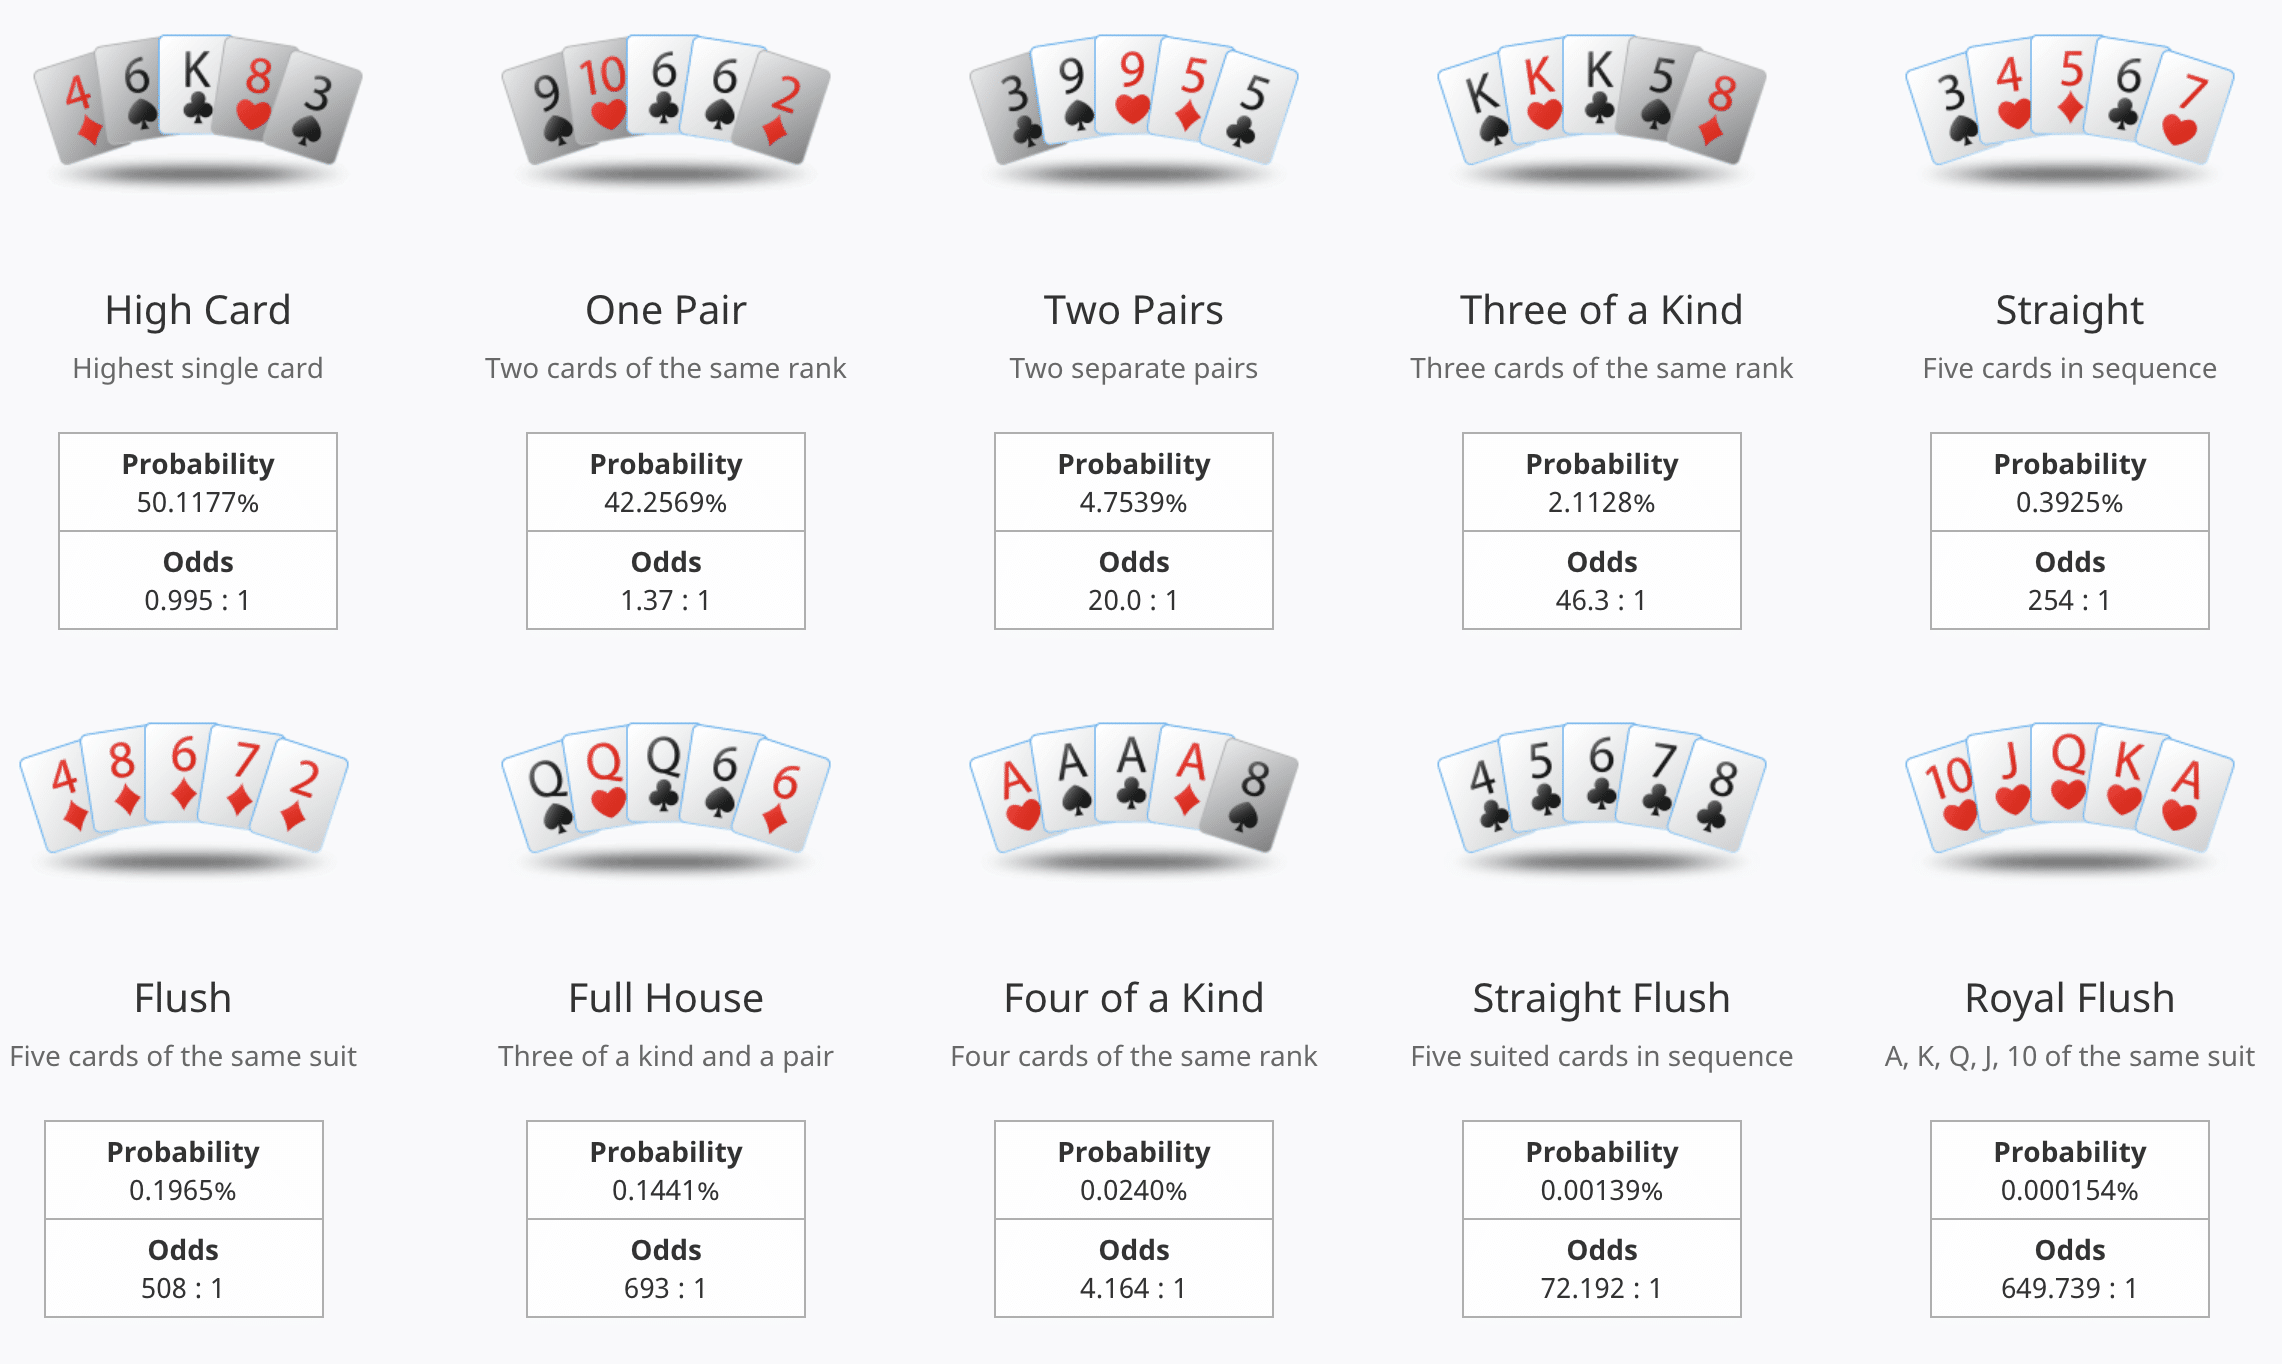 Odds & probabilities for common poker hands